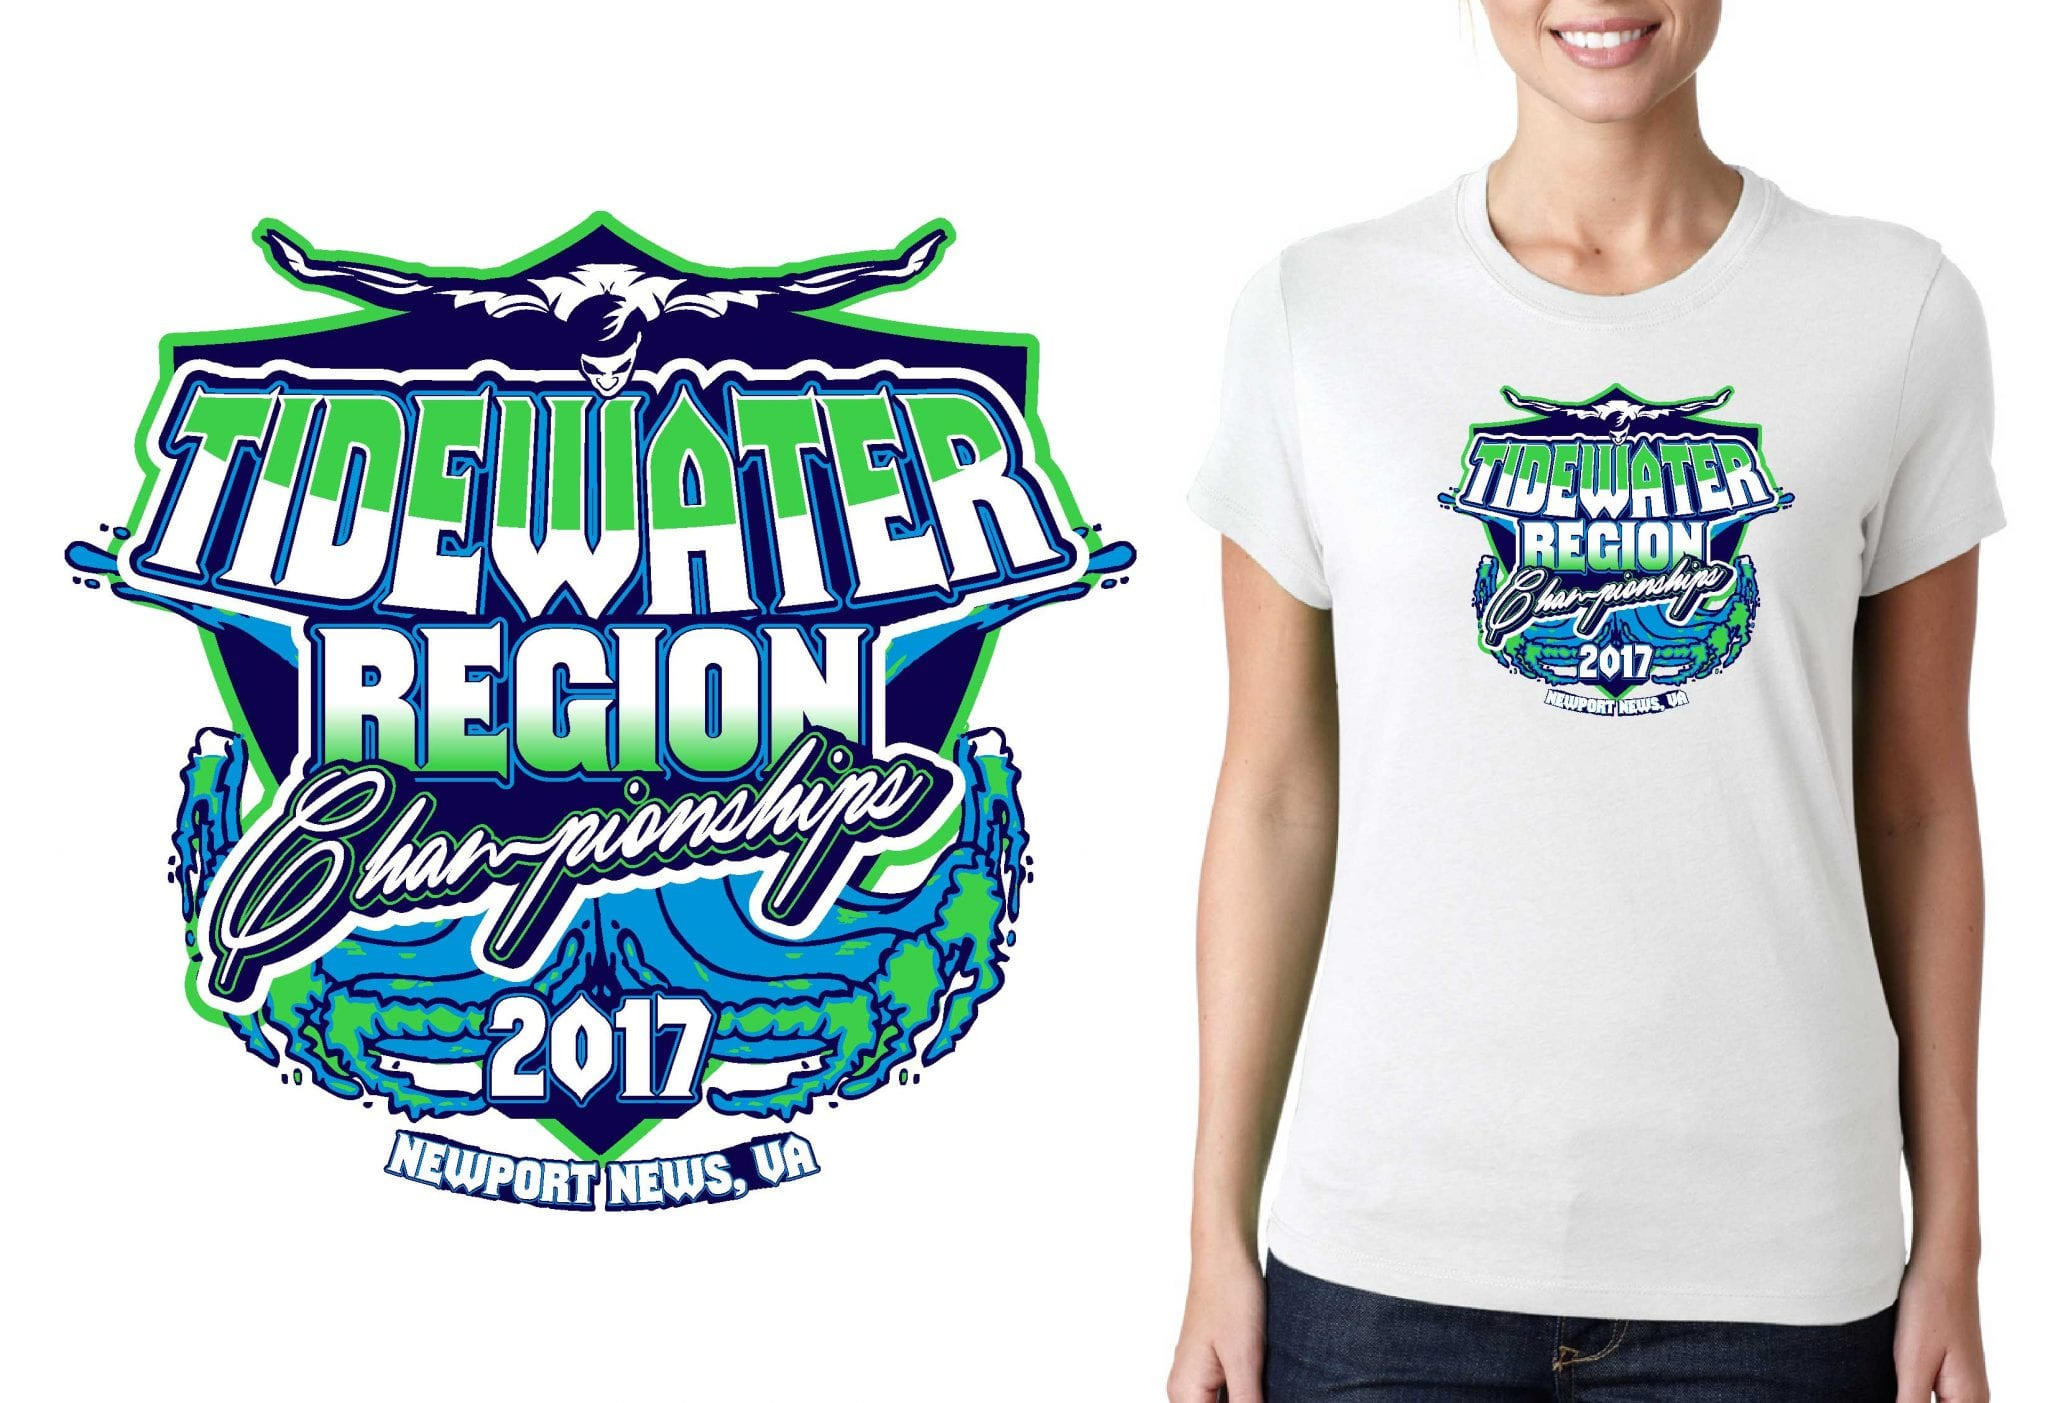 SWIMMING T SHIRT LOGO DESIGN Tidewater-Region-Championships BY UrArtStudio